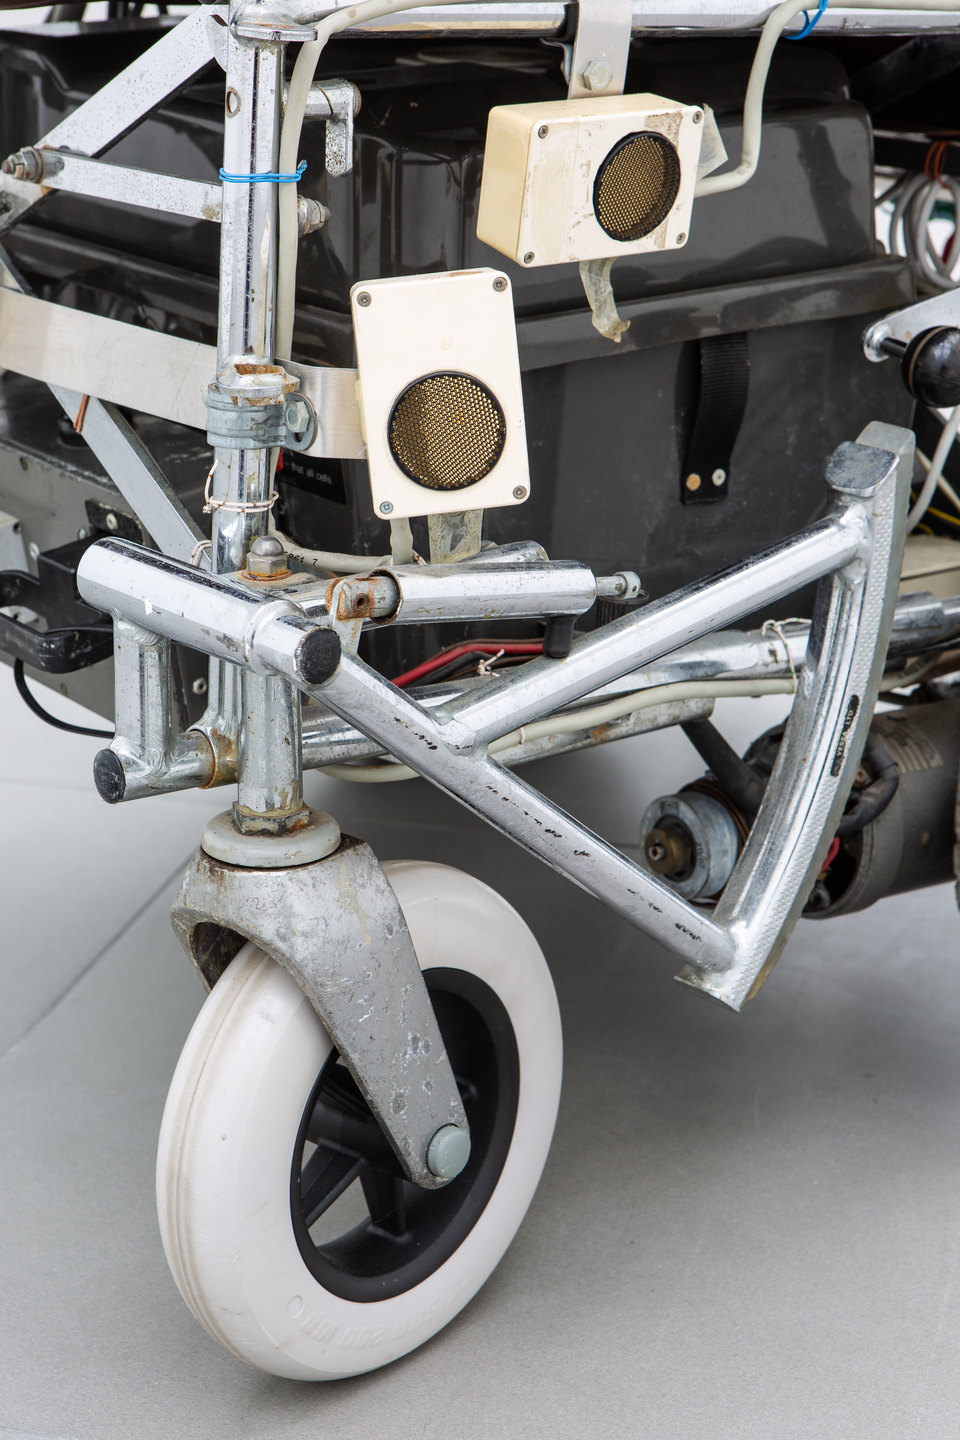 Donald Rodney, 'Psalms' [detail], 1997, Wheelchair, computer, proximity sensors, 95 x 65 x 70cm, Civic Duty, 2019, Cell Project Space